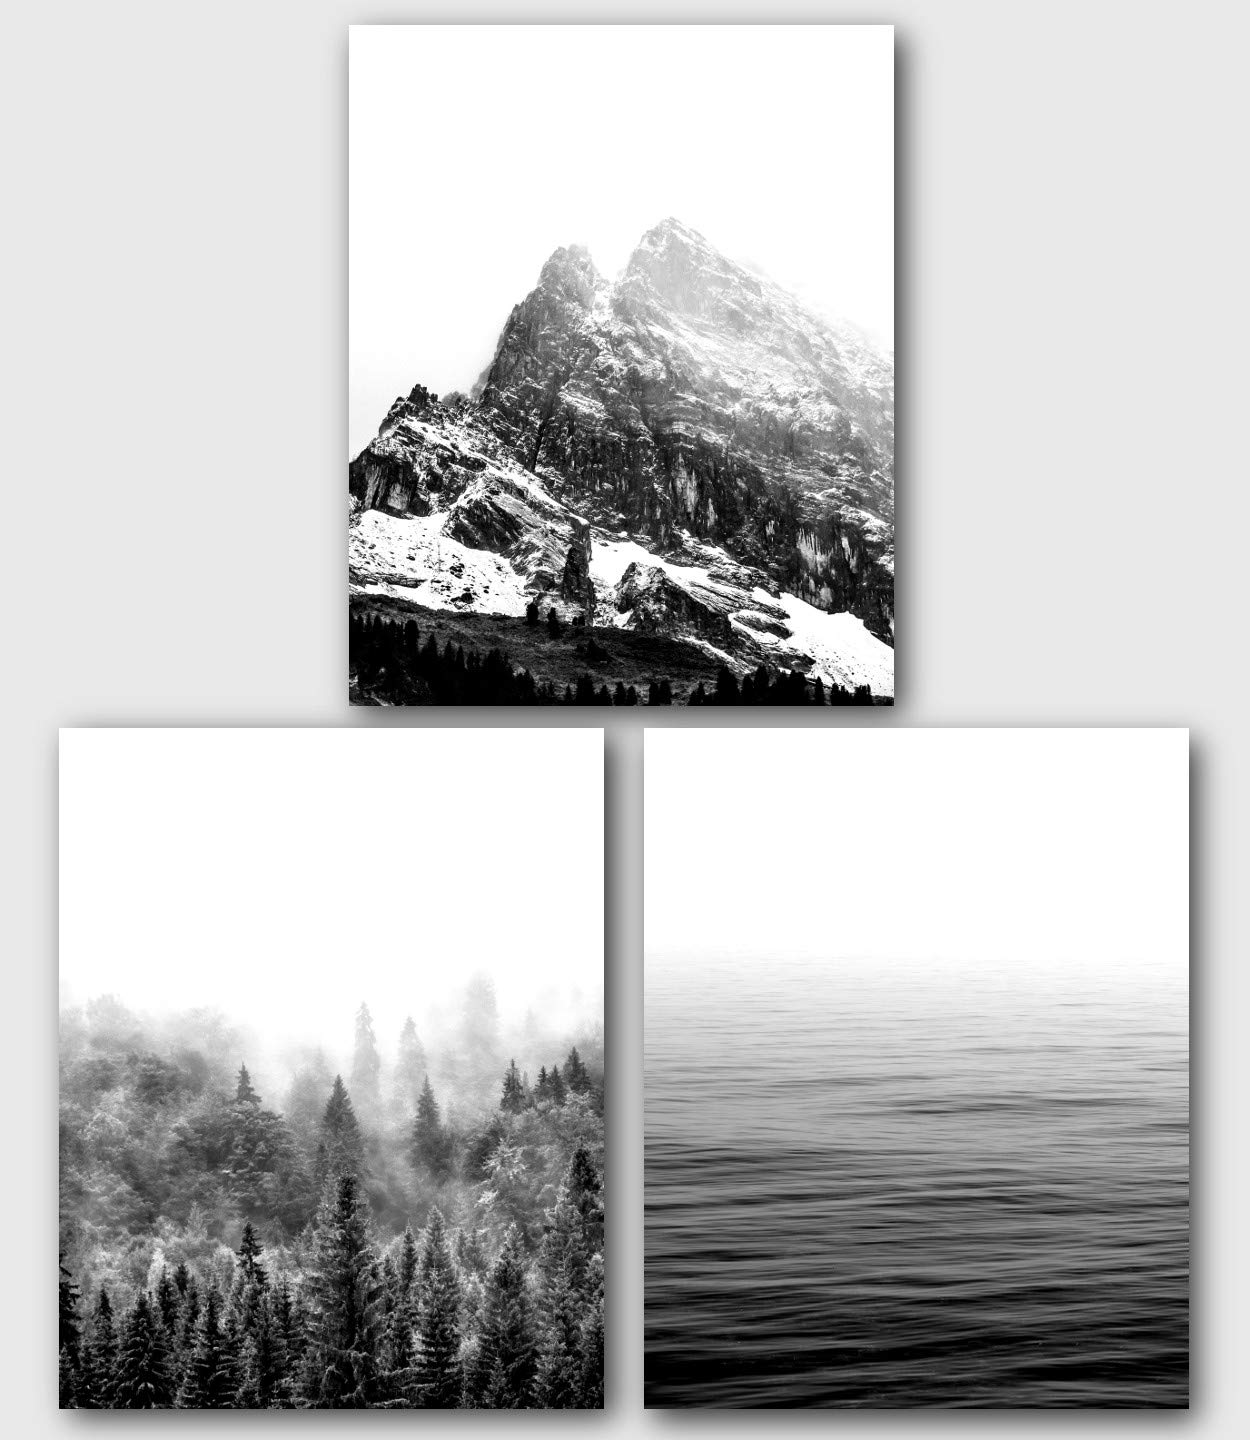 Mountains, Forest, Lake, Set of 3 Prints, Black and White Nature Art, 8 x 10 Inches, Unframed